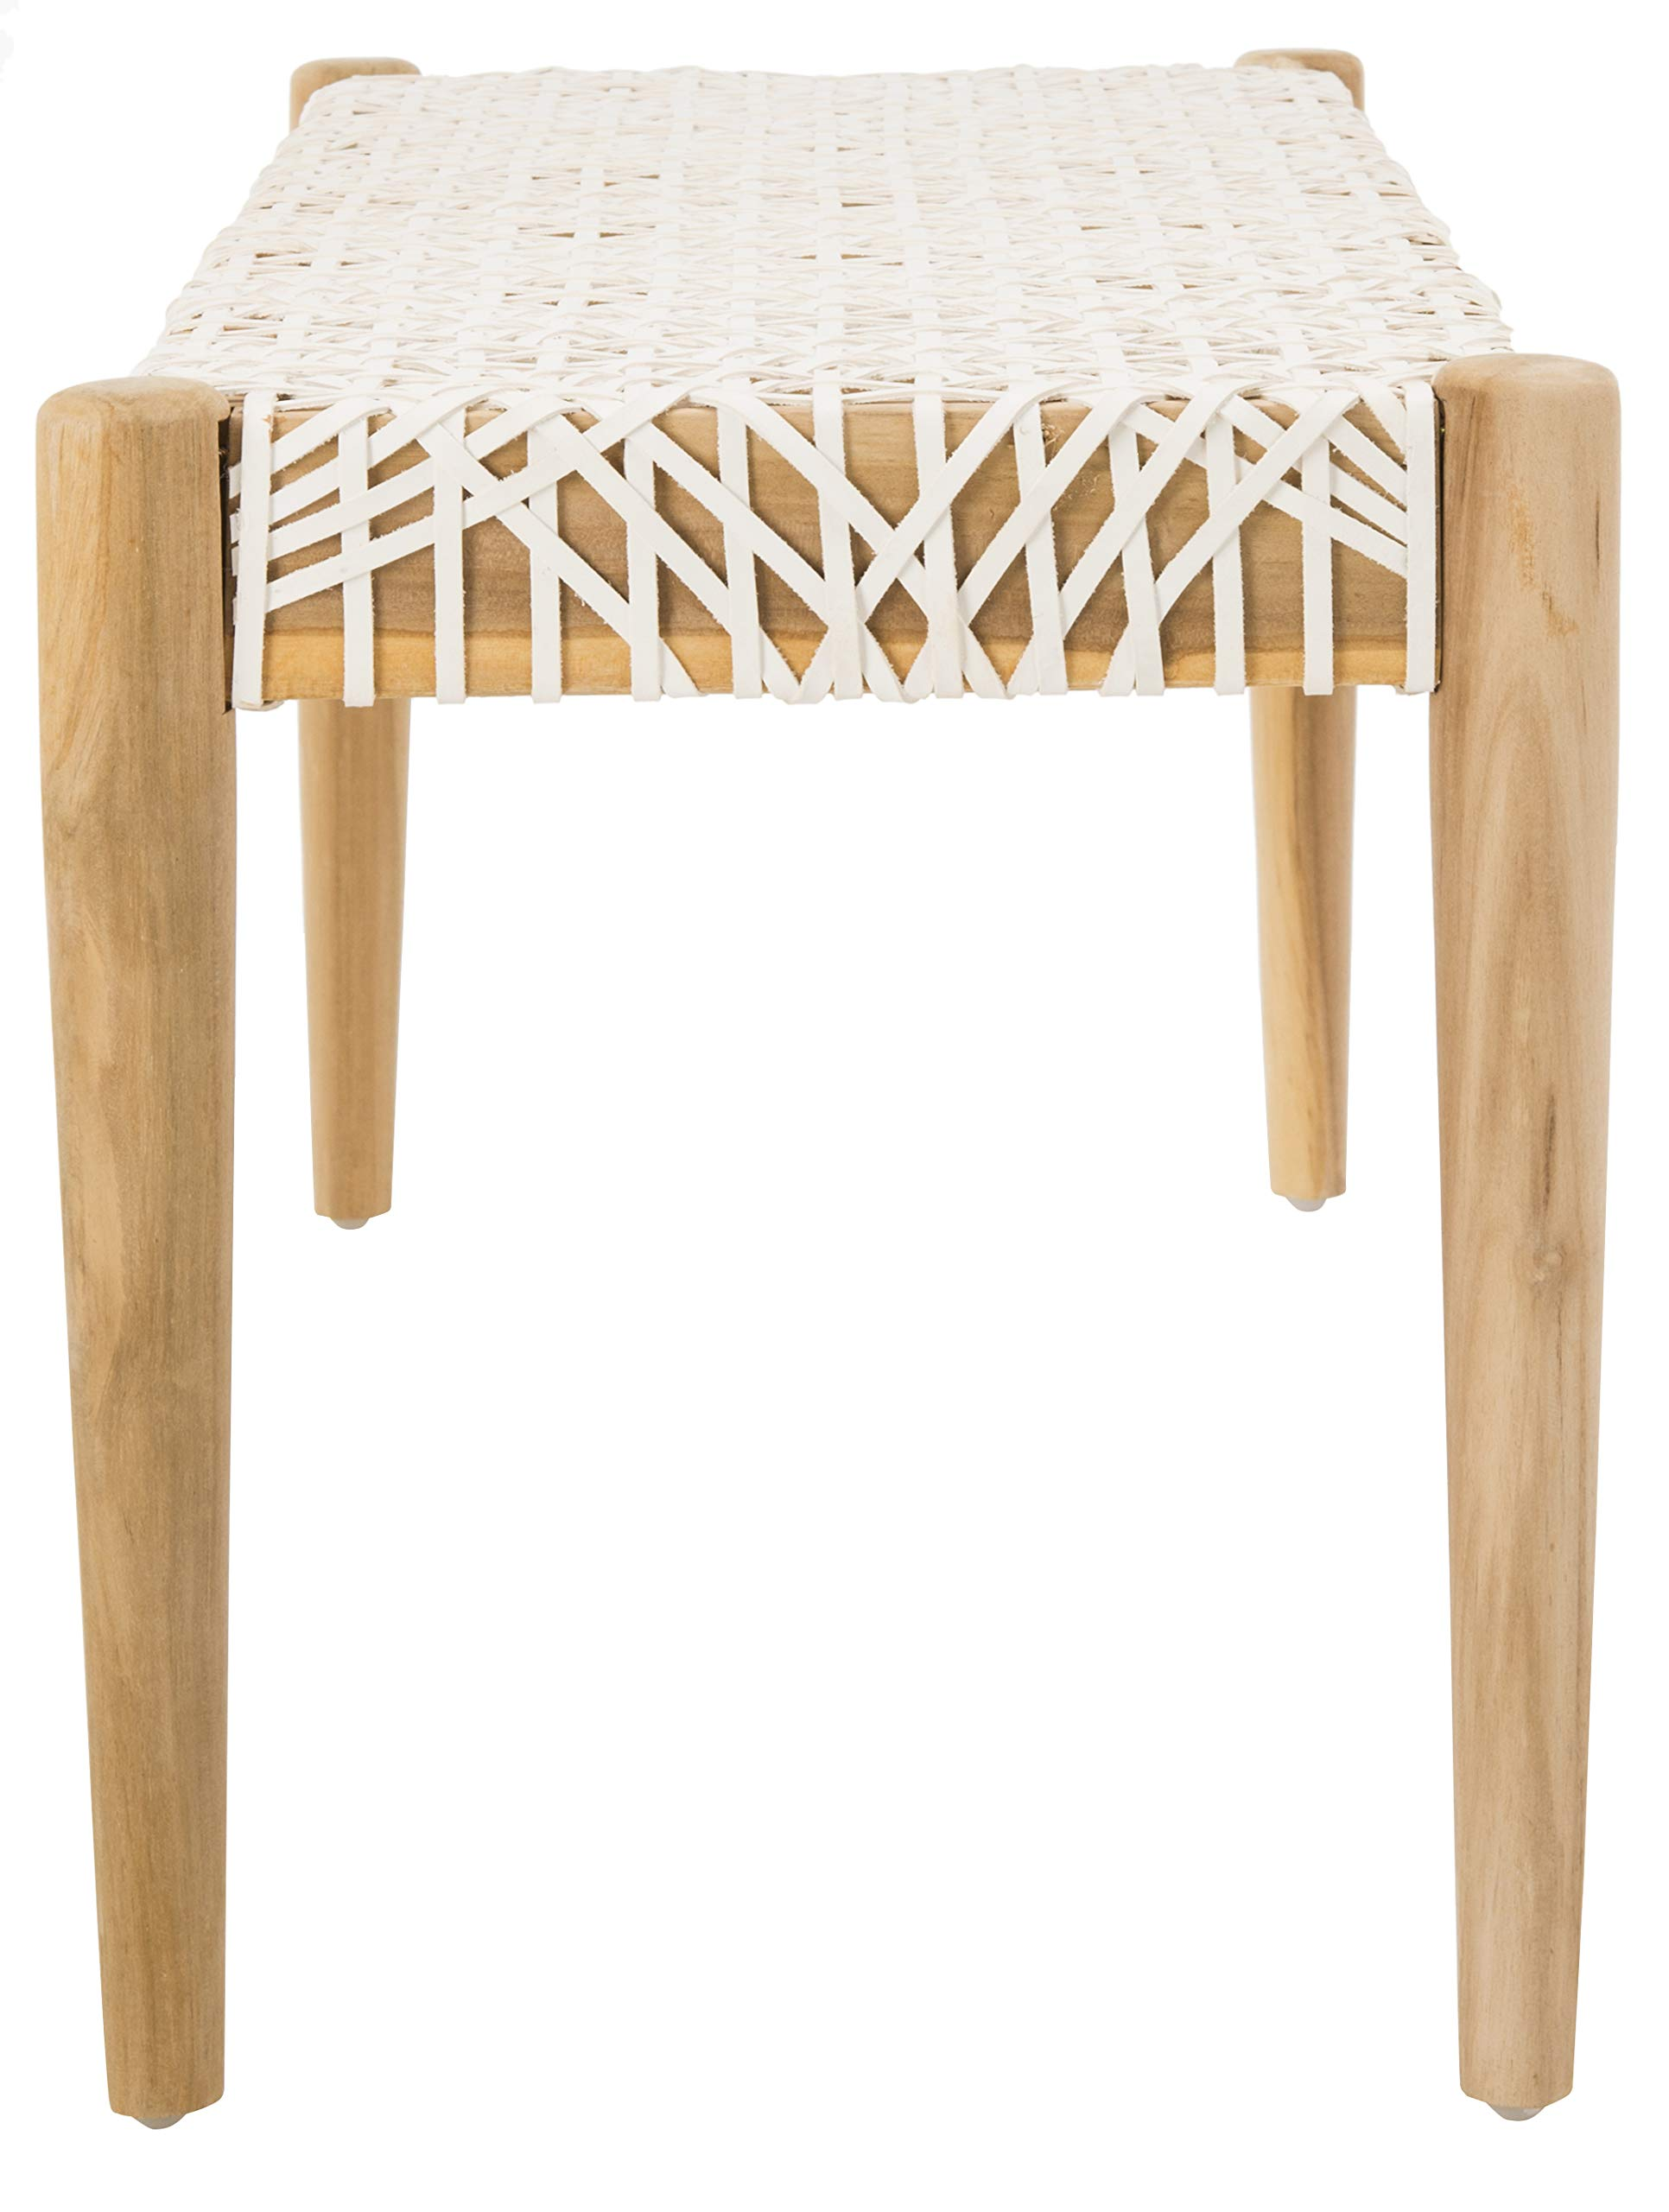 Safavieh BCH1000A Home Collection Bandelier Bench, Off- Off-White/Natural by Safavieh (Image #5)